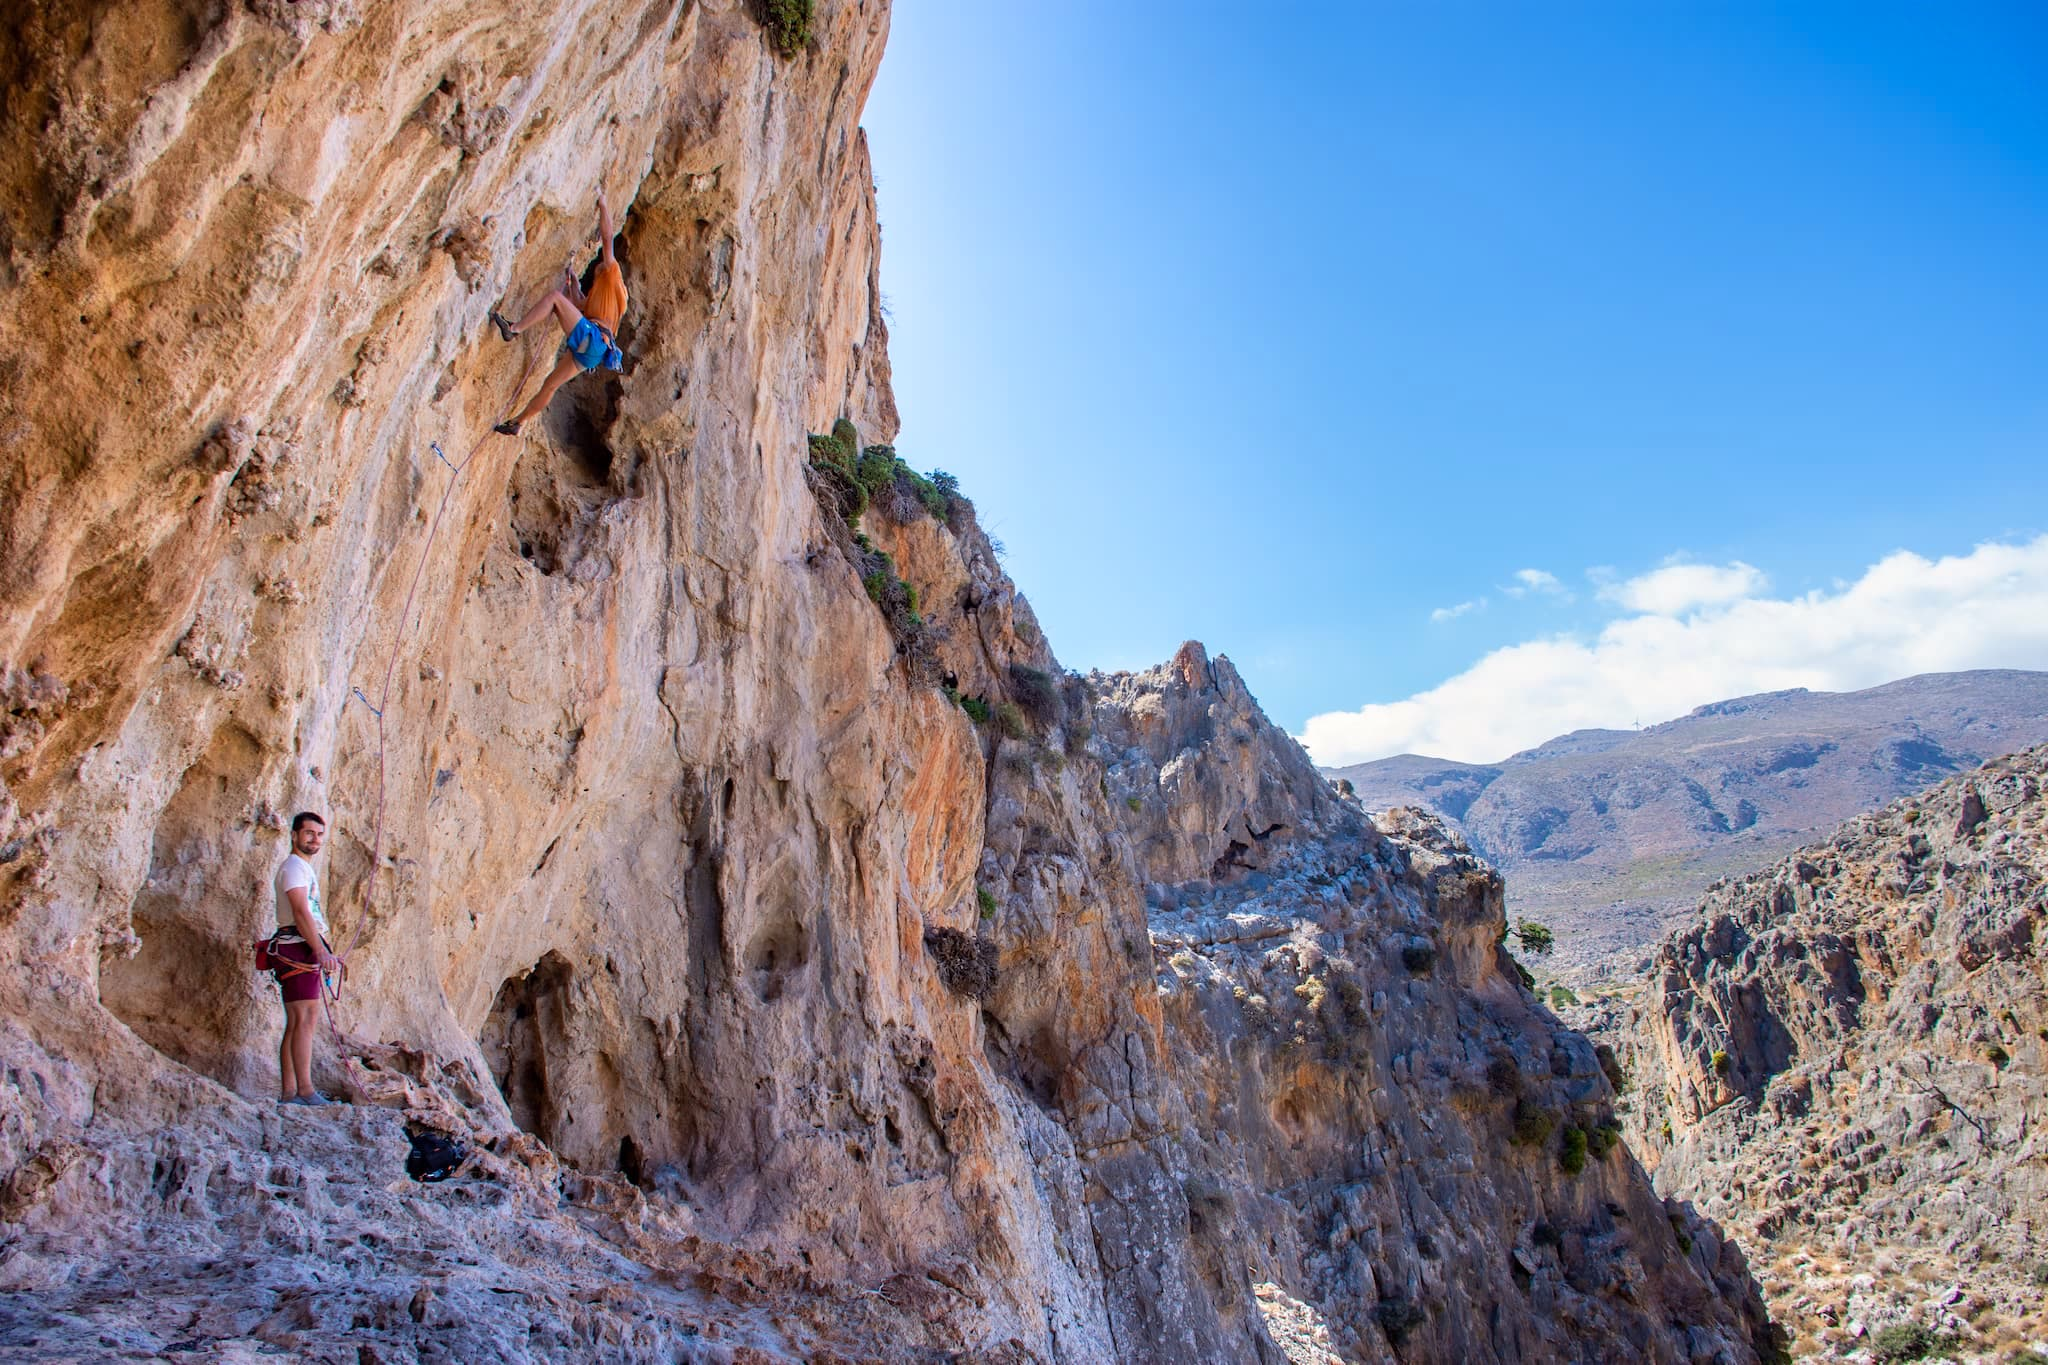 Canyons and new climbing areas in the east Crete